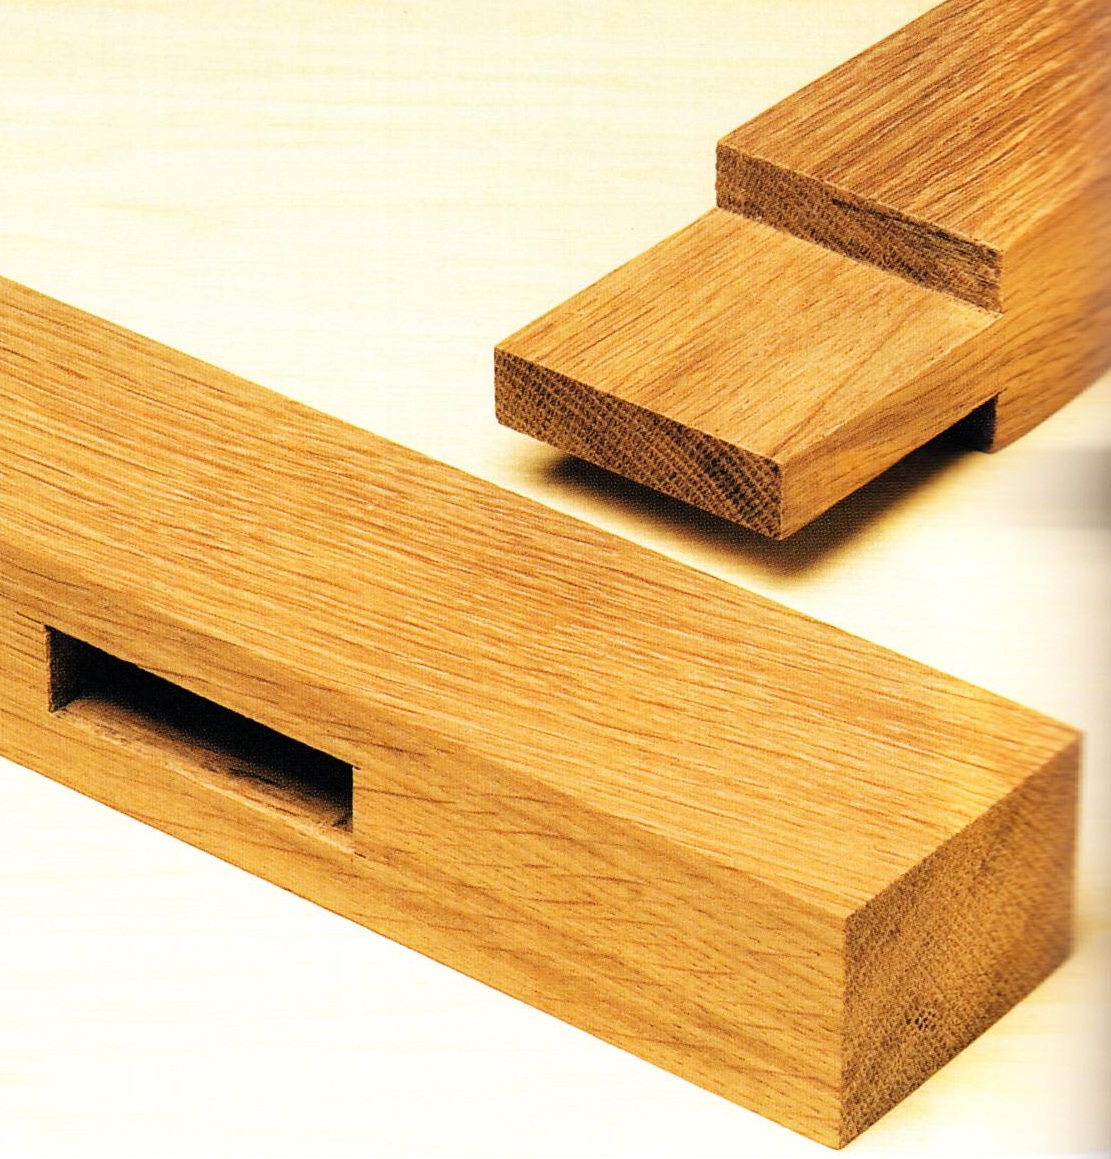 wooden mortise and tenon joints